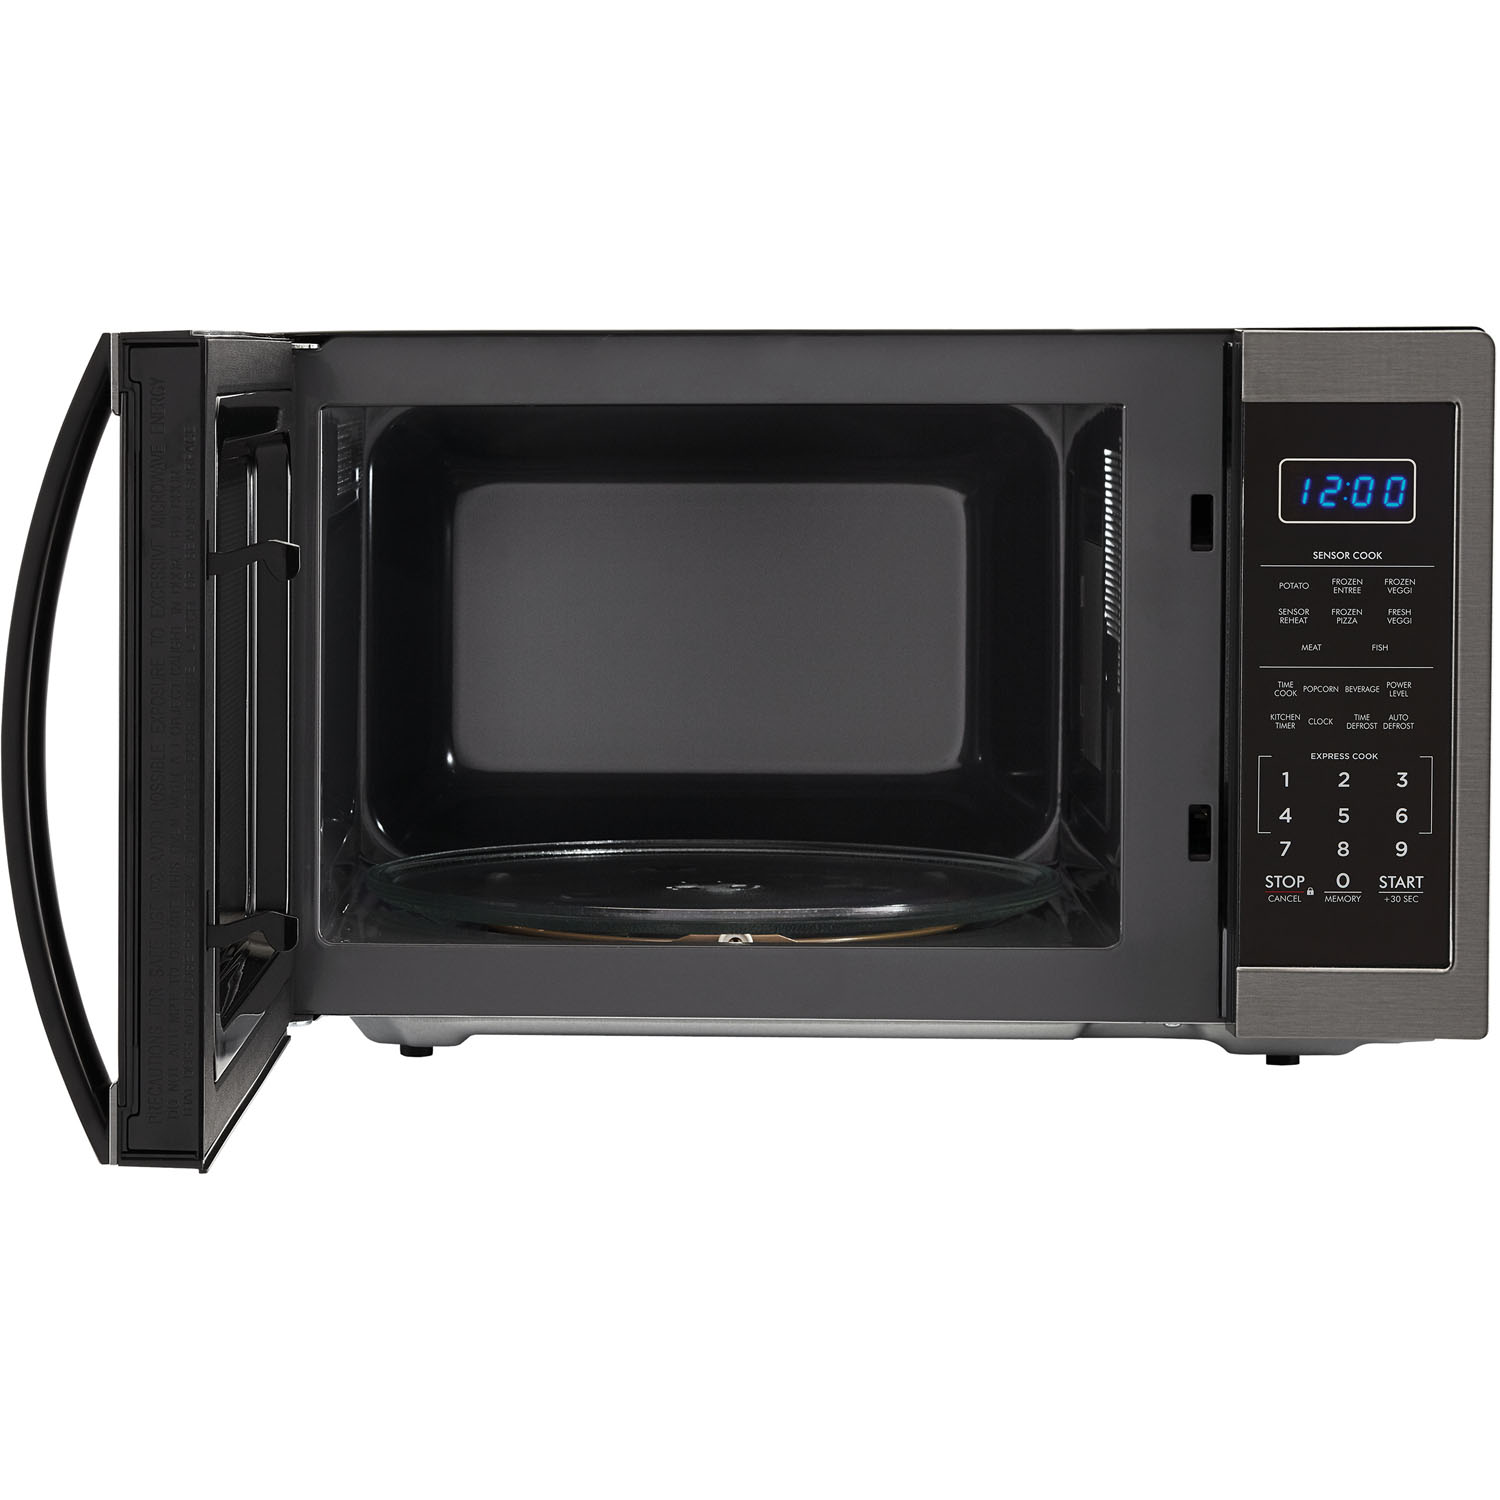 Ft 1100w Countertop Microwave Oven In Black Stainless Steel Smc1452ch